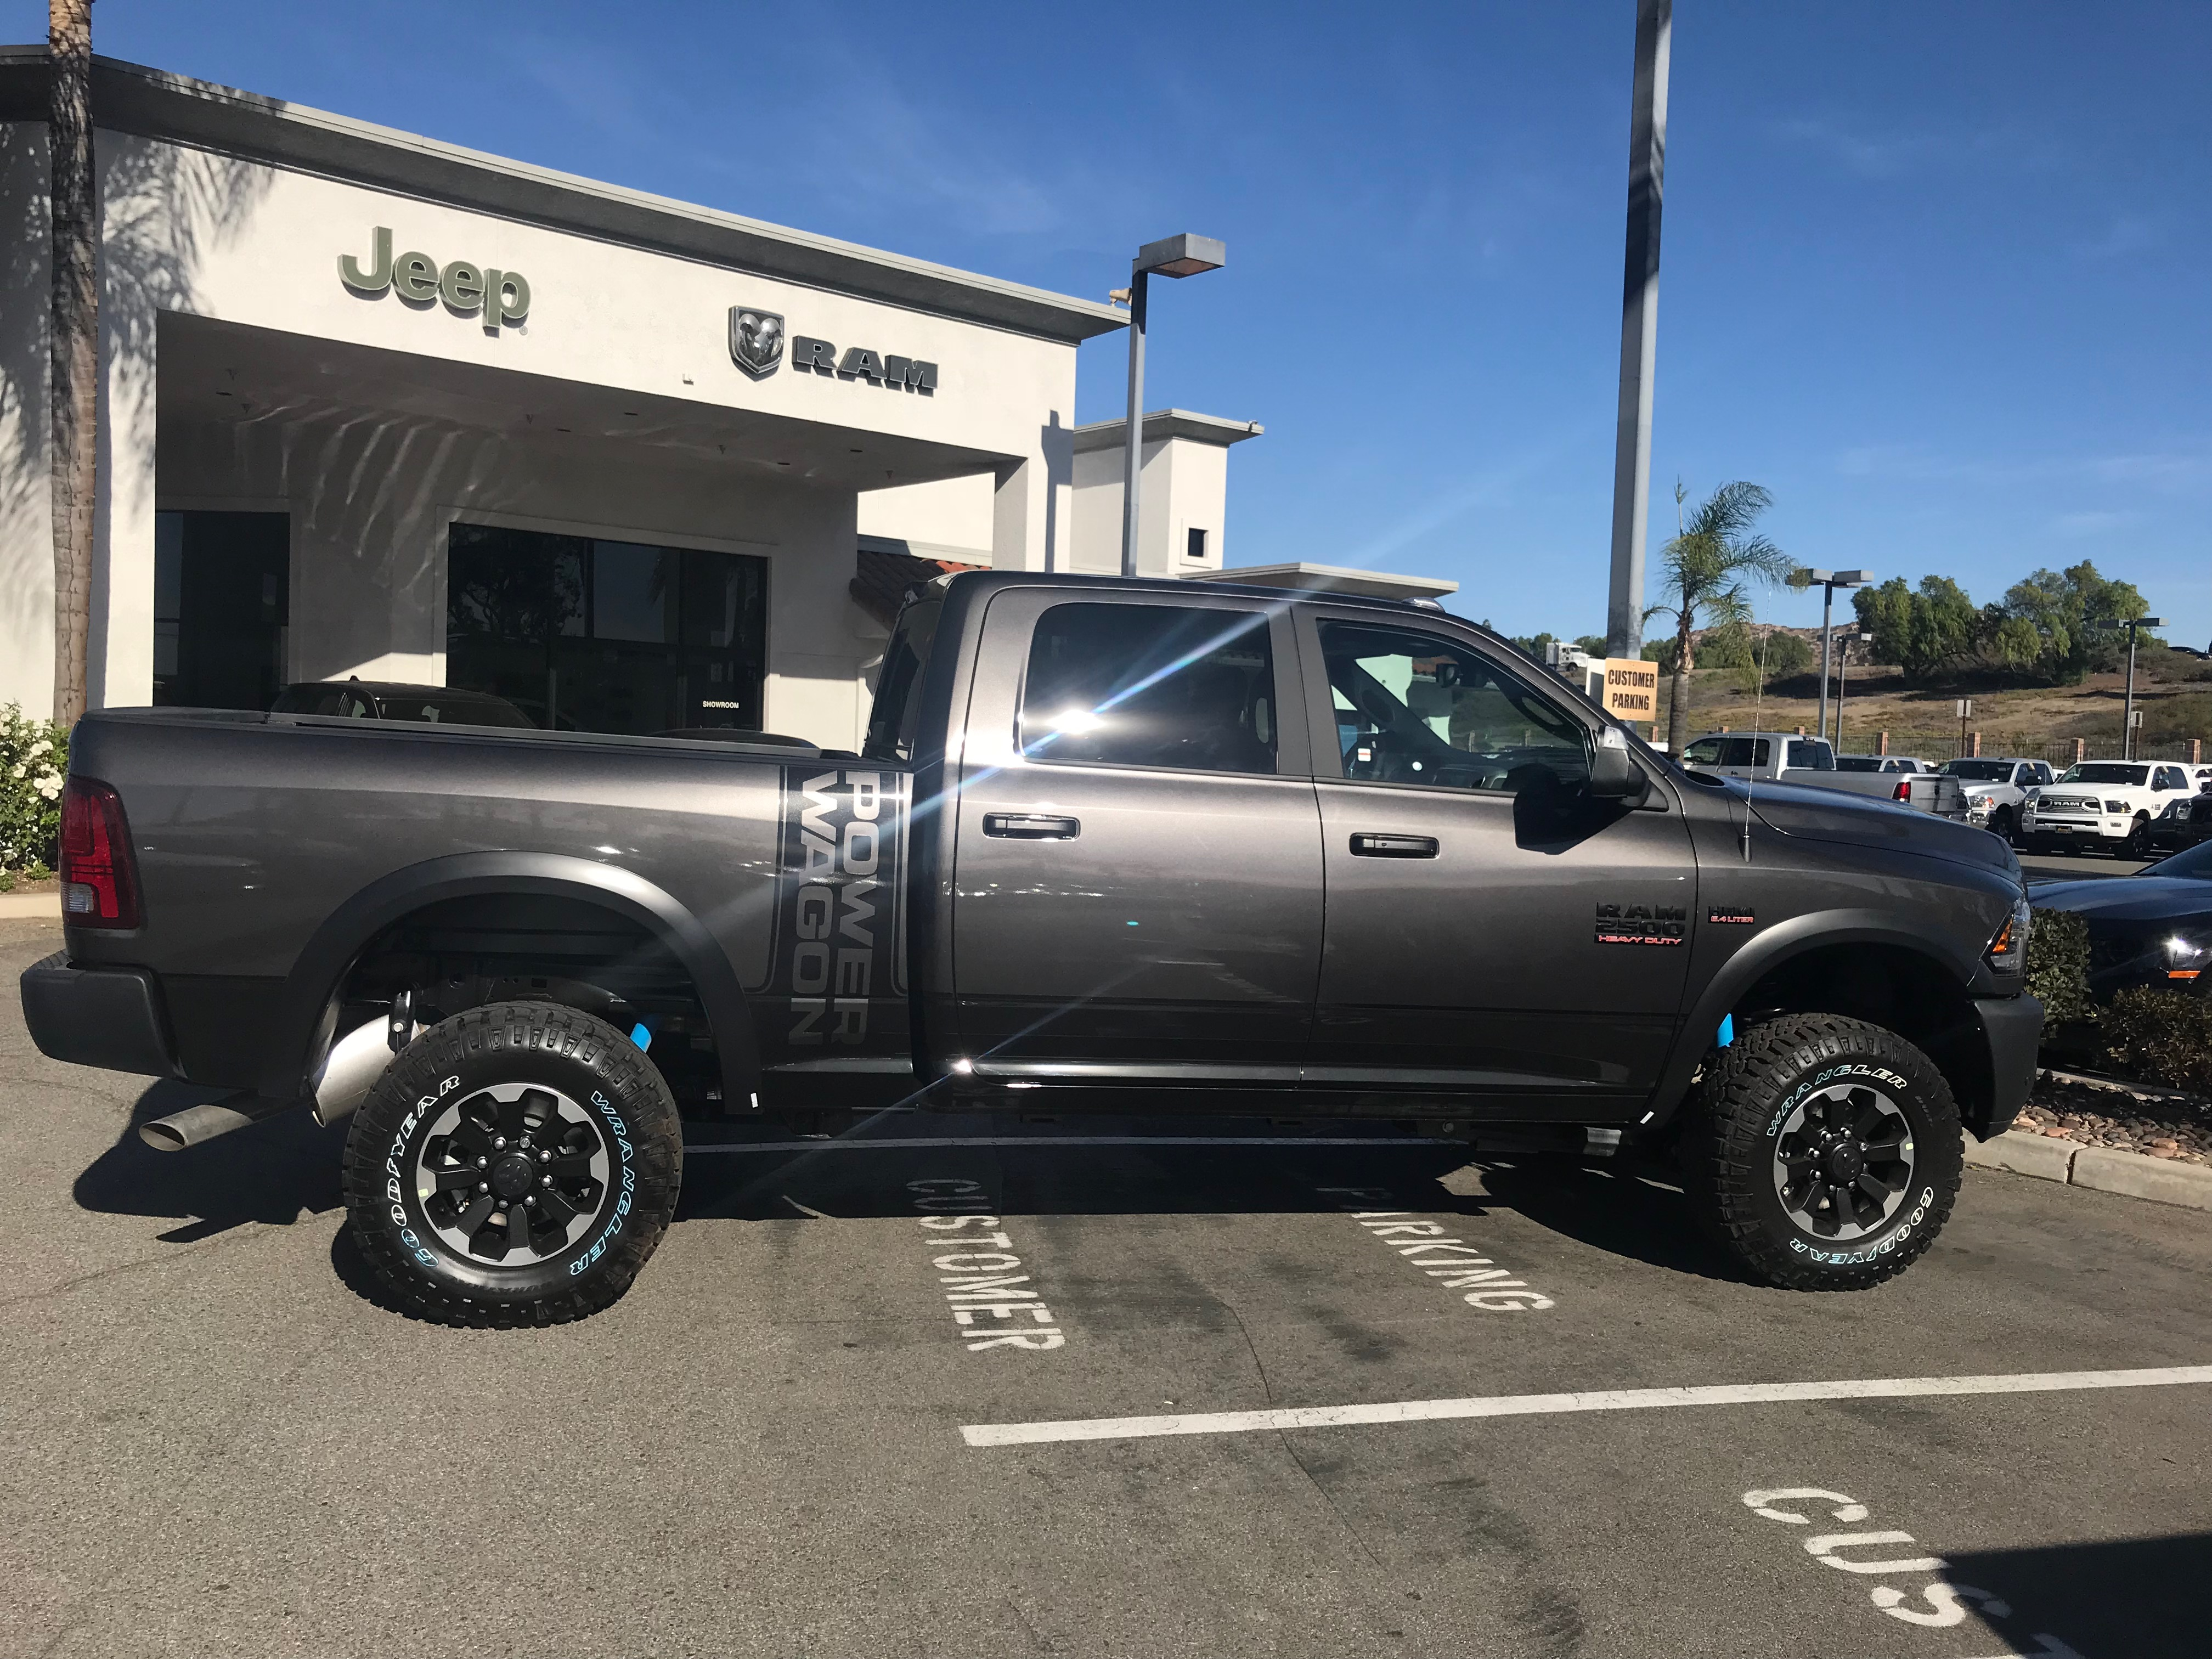 2015 Ram 2500 >> Thoughts on 2018 Power Wagon for pulling Demon | SRT Hellcat Forum